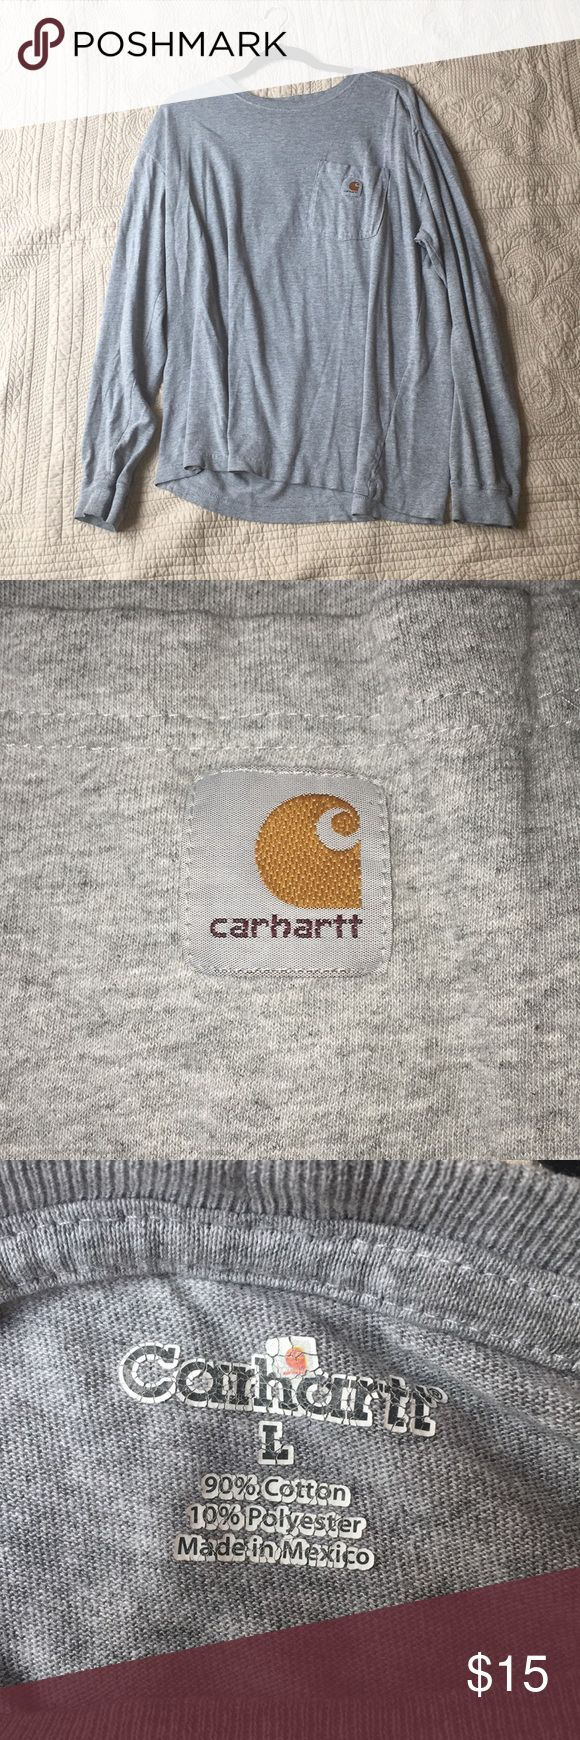 Men's Carhartt sweatshirt Men's Carhartt lose fitting sweatshirt Has only been worn a couple times, still in great condition Smoke free home but has been washed Men's large Color is gray Carhartt Sweaters Crewneck